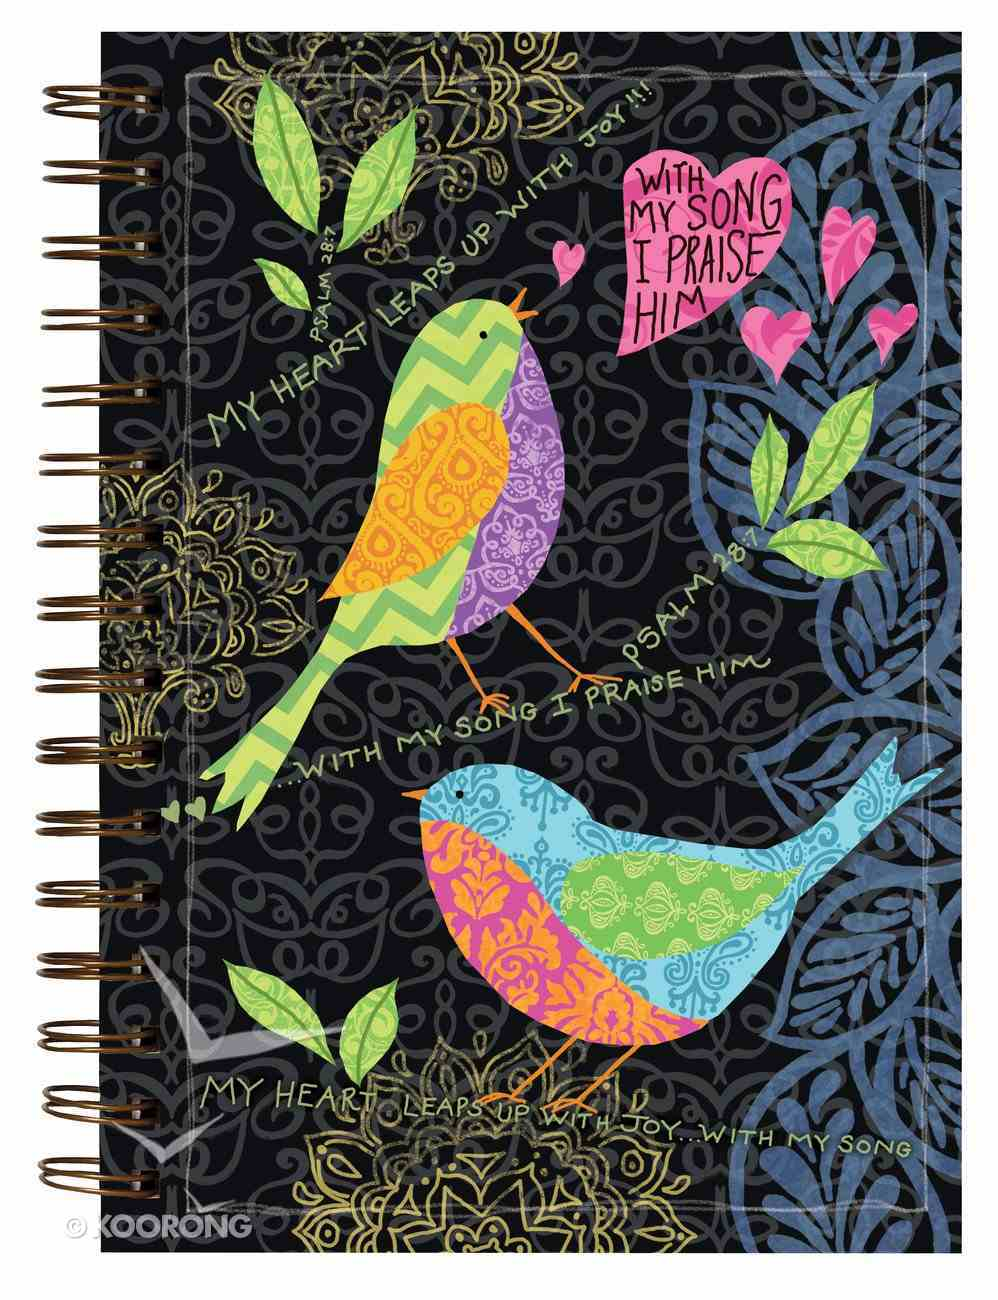 Garden Blessings Spiral Journal: Give Thanks, Psalm 28:7, My Heart Leaps Up With Joy!!! Spiral